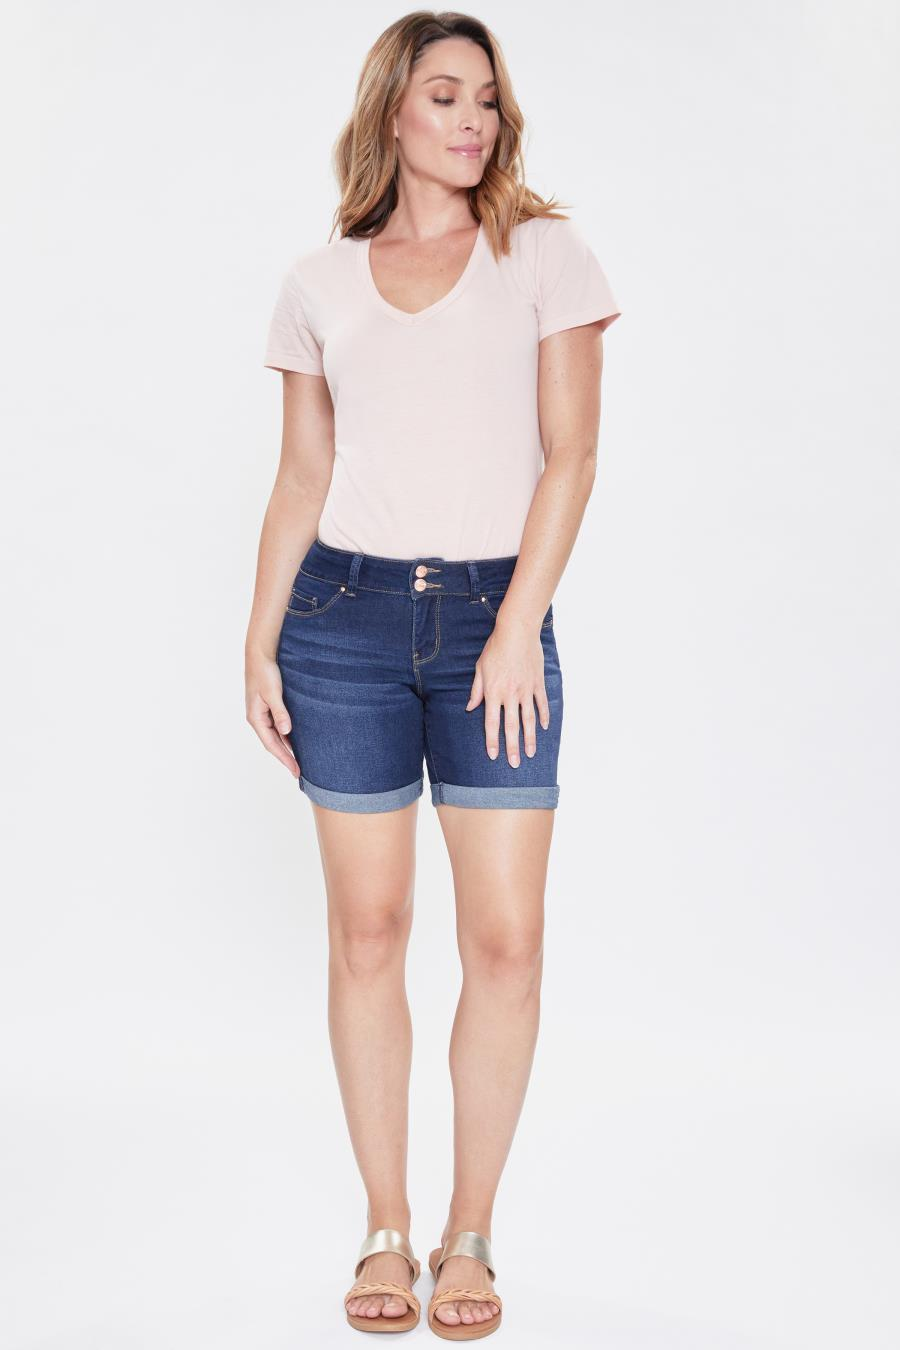 Women 2 Button Mid-Rise Basic Cuffed Shorts